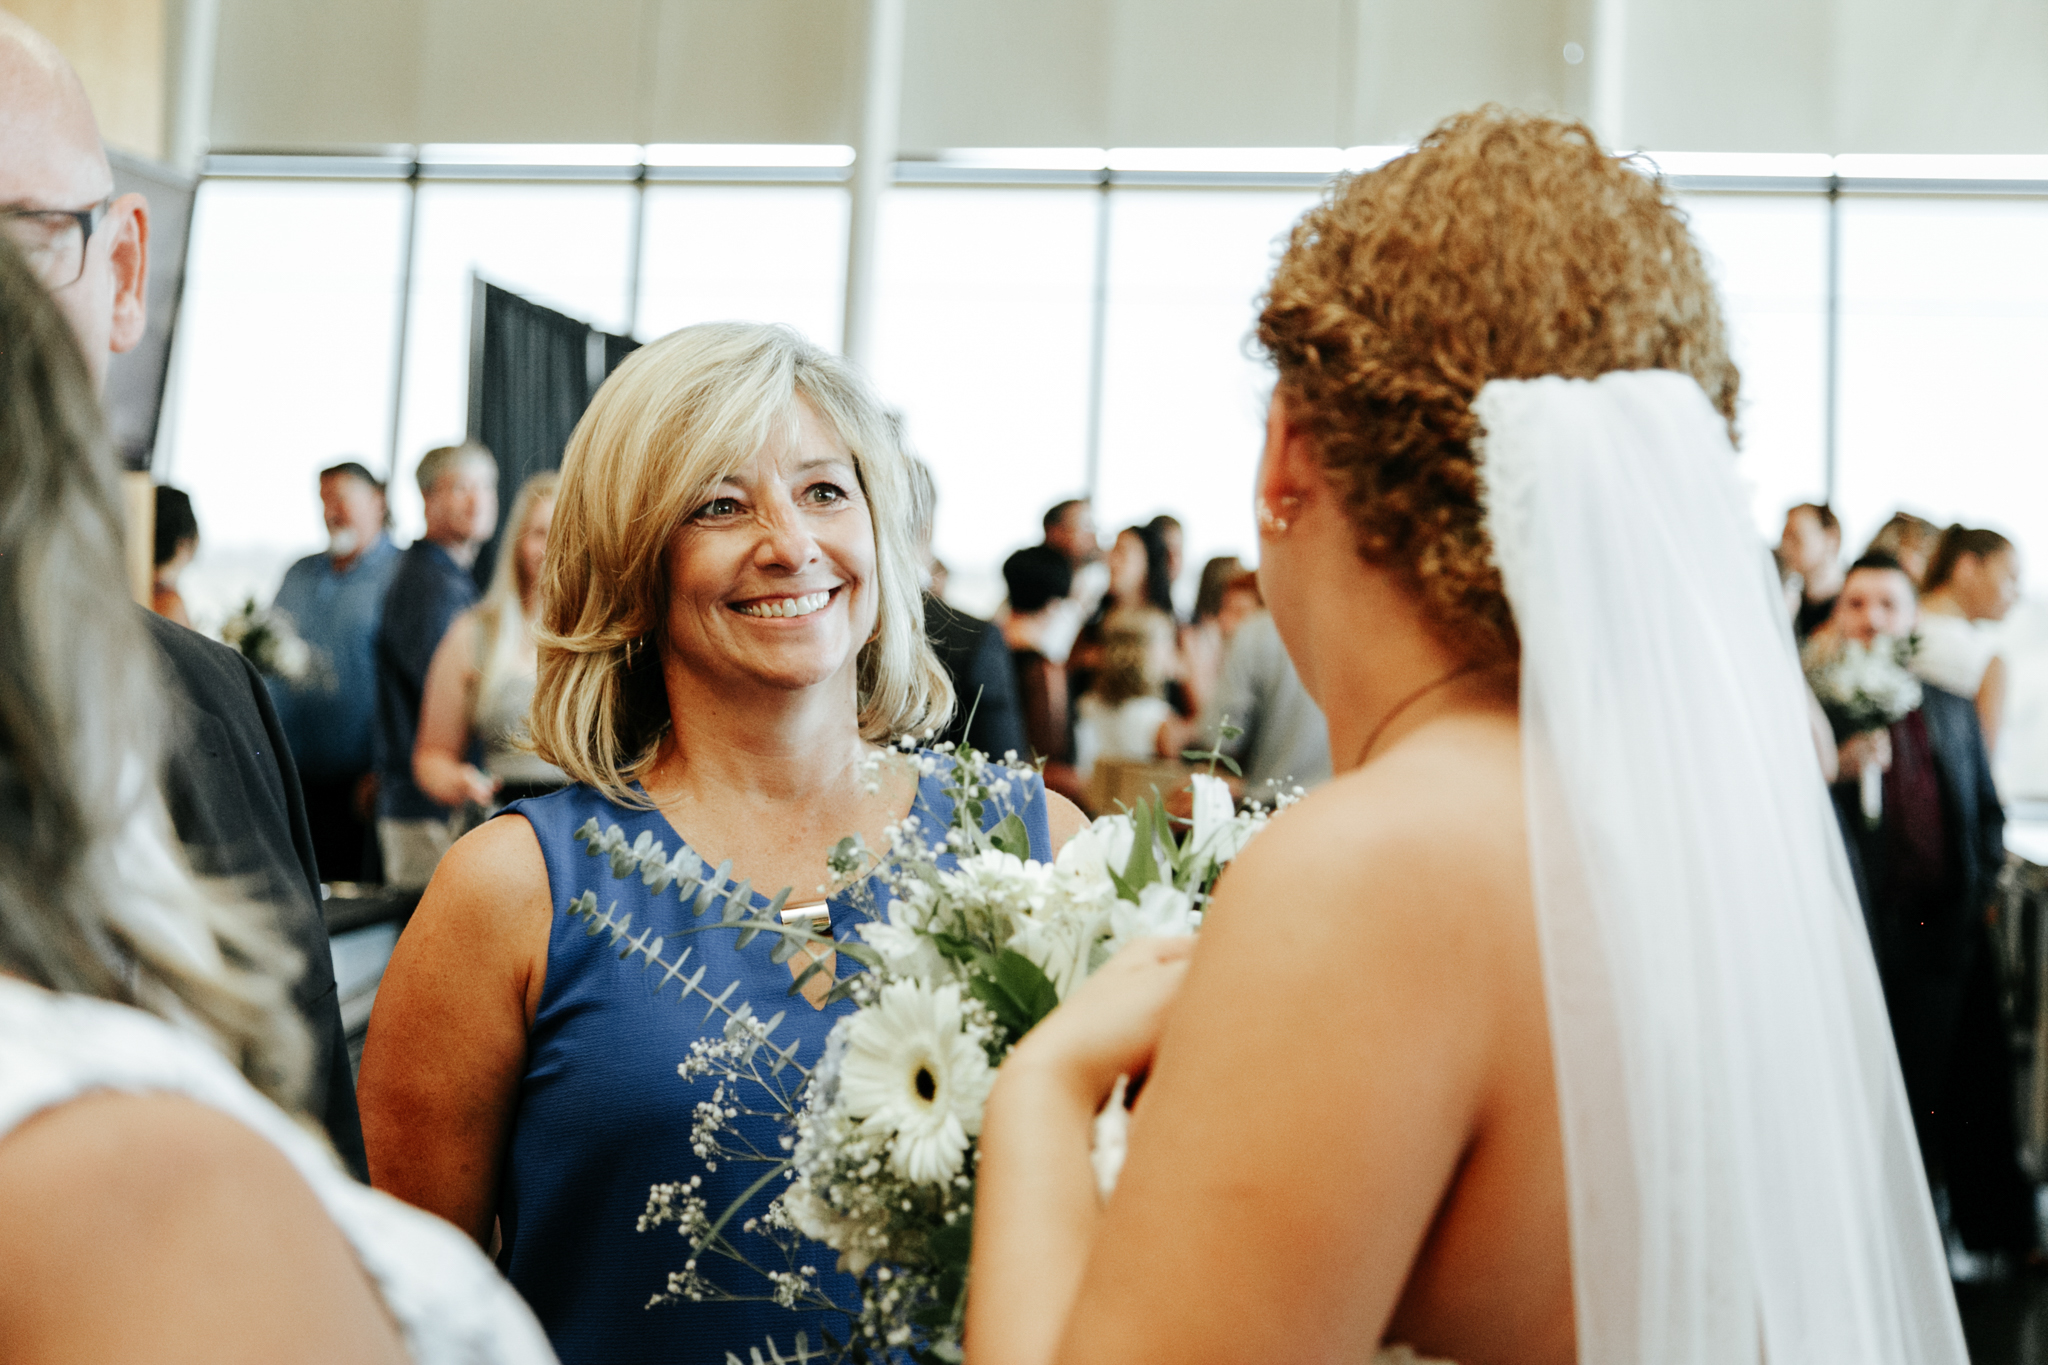 lethbridge-wedding-photographer-love-and-be-loved-photography-trent-danielle-galt-reception-picture-image-photo-65.jpg